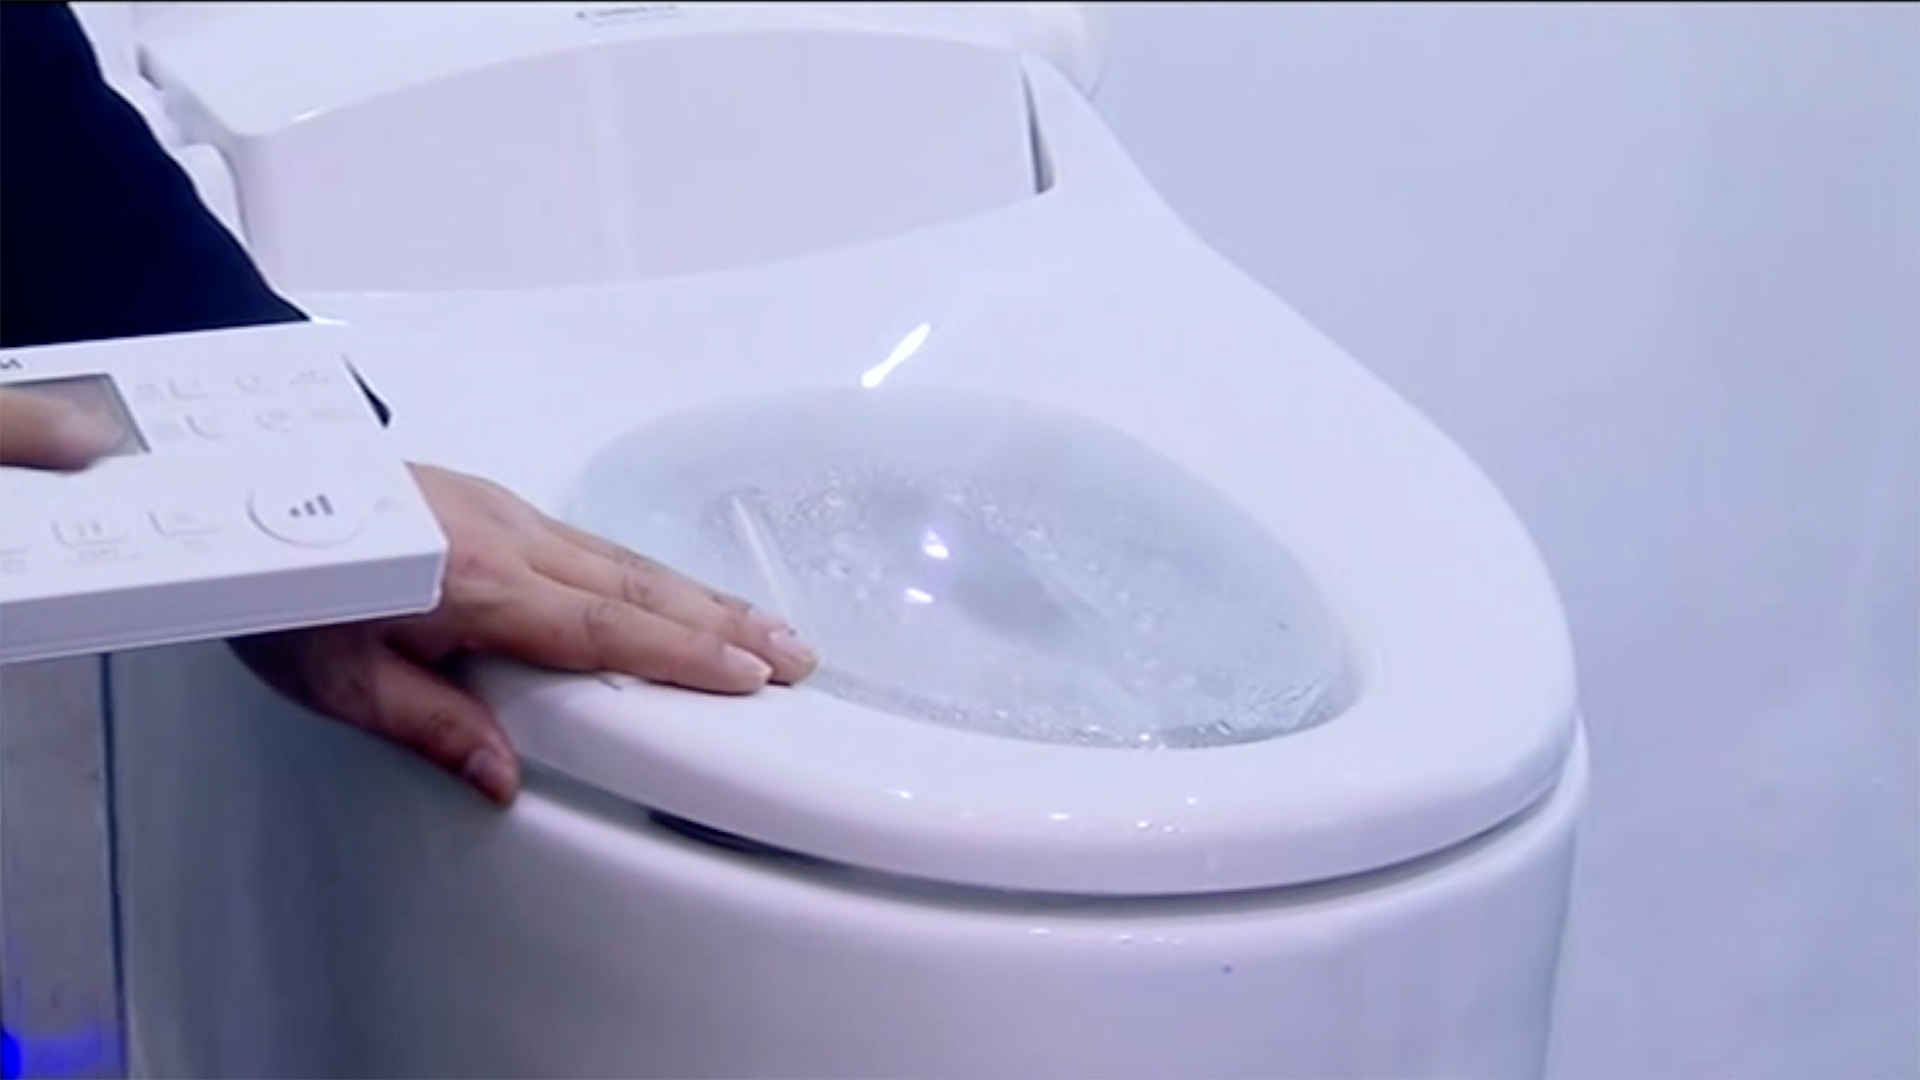 Domestic brands begin to take over China's bathrooms